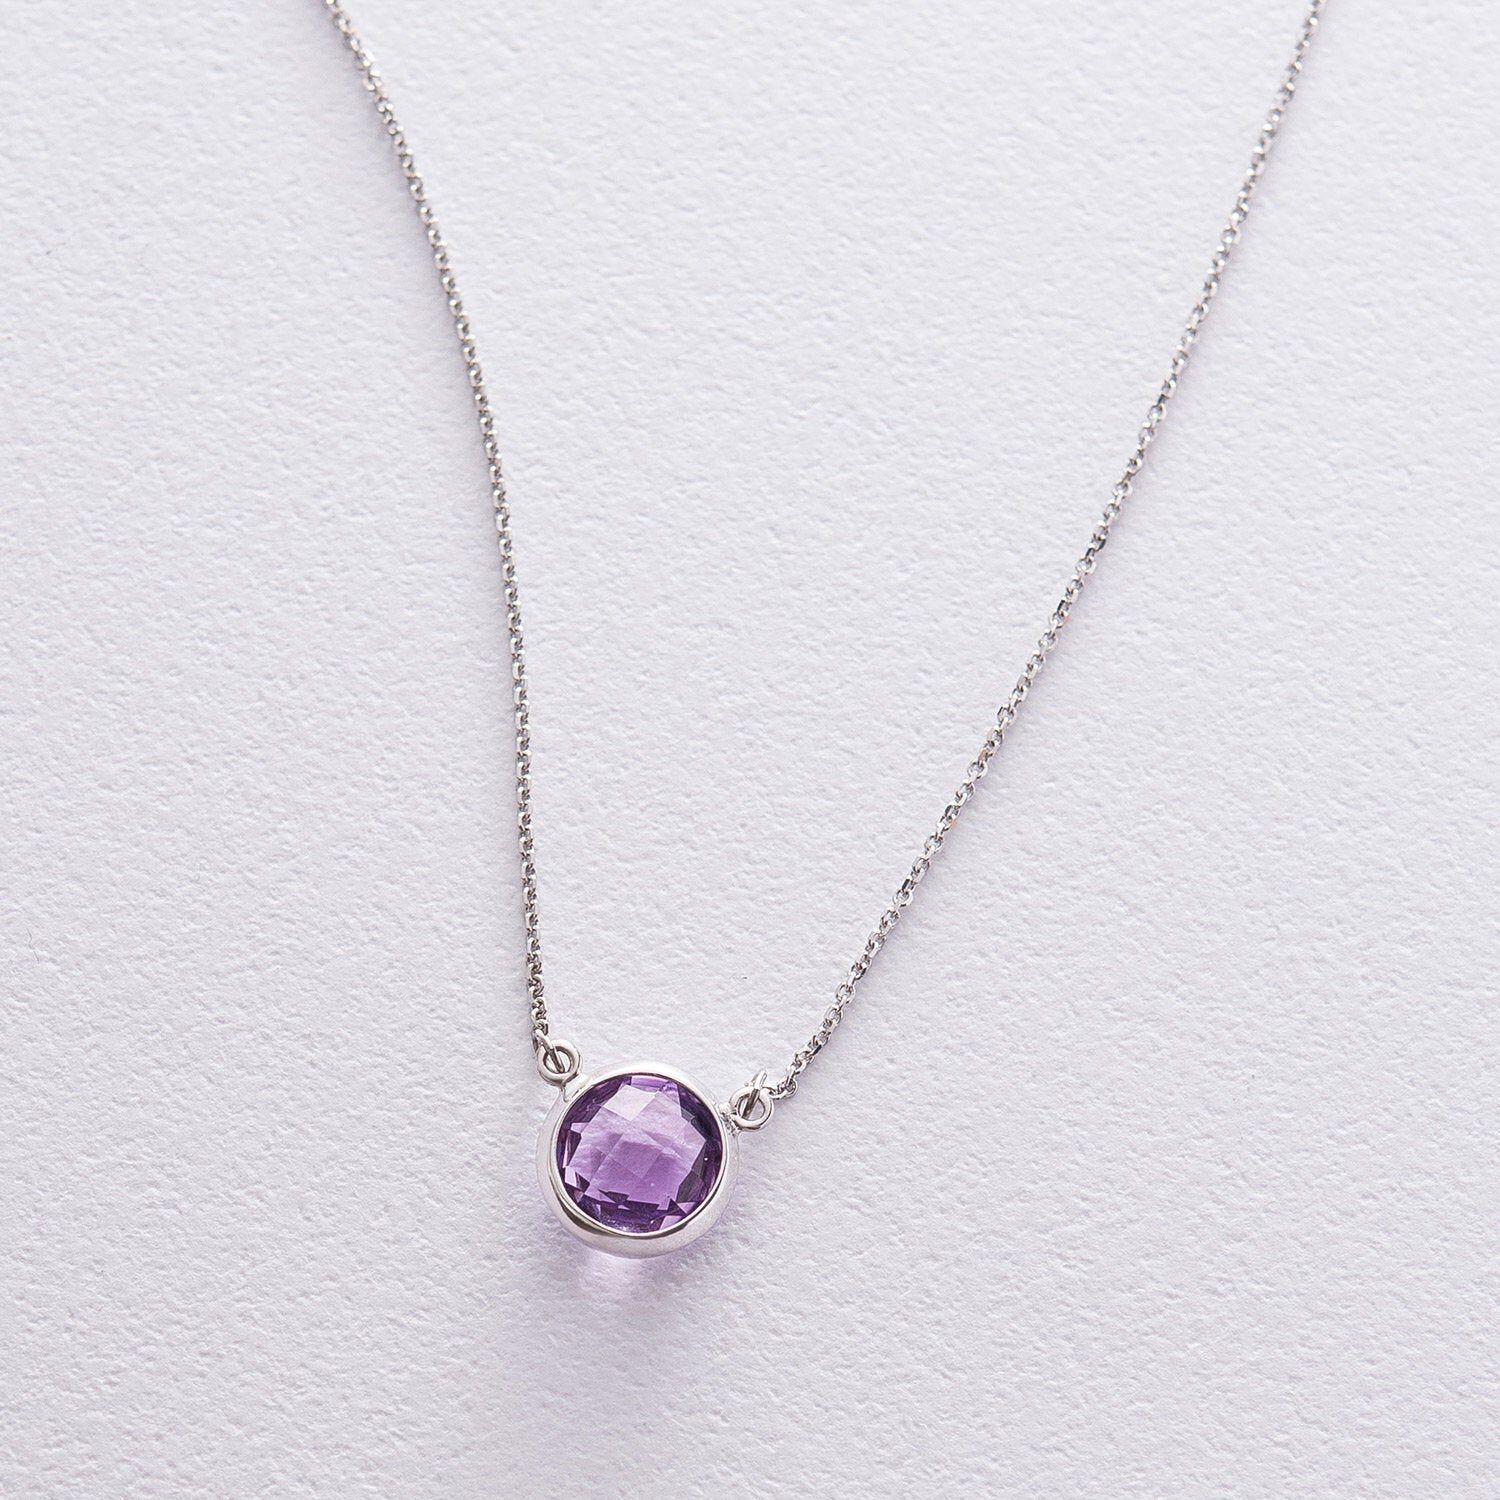 crystal necklace gold amethyst drop necklace Little Amethyst silver necklace dainty birthstone necklace birthstone jewelry